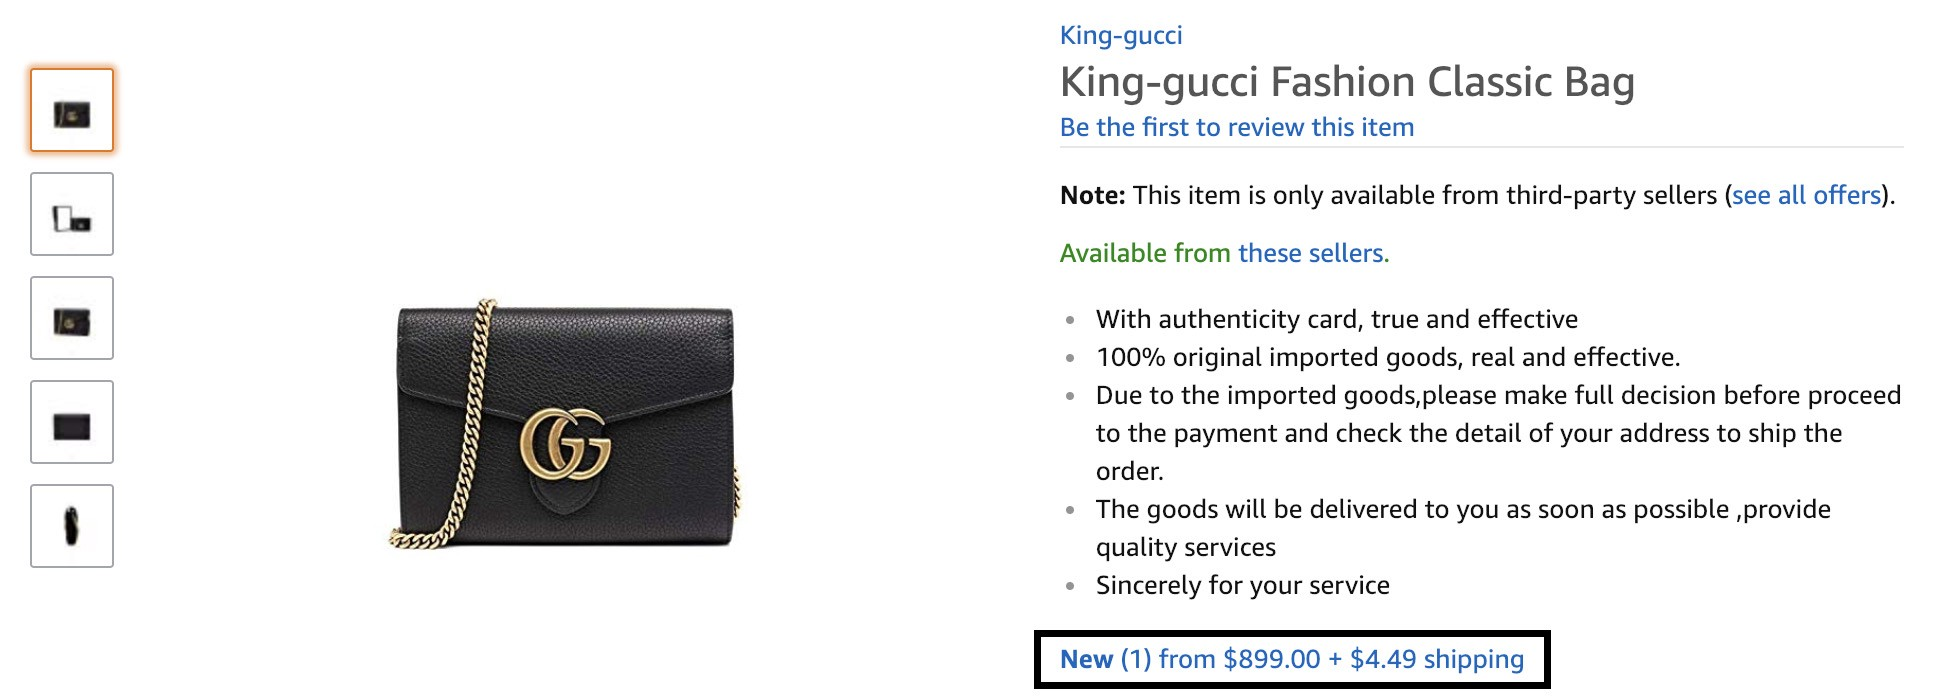 The Truth About Counterfeit Luxury Handbags - Becca Risa